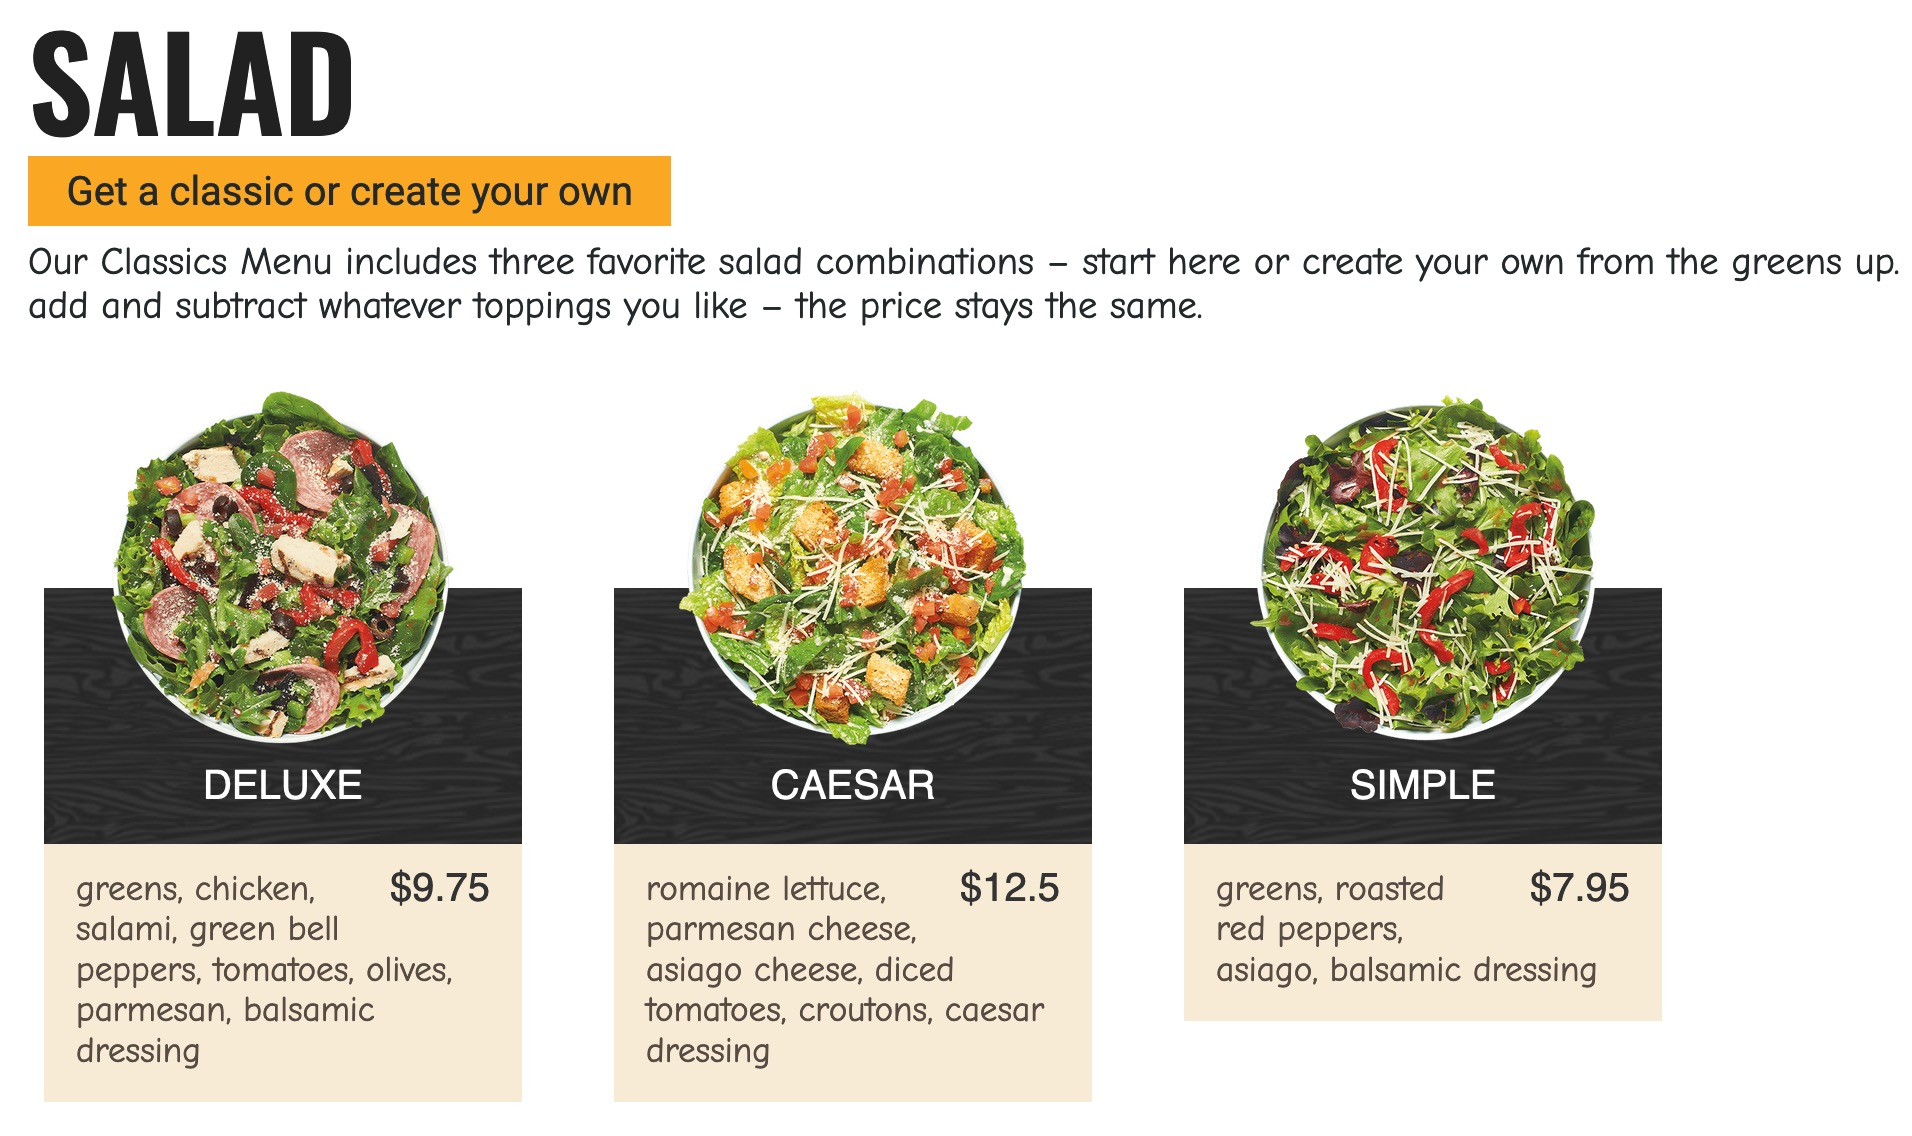 Bright <strong>Pizzeria</strong> theme with contrast image background and good color balance to help a customer find its favorite pizza or salad. Sub-category design is available and groups categories in nice sections that are easy to read.